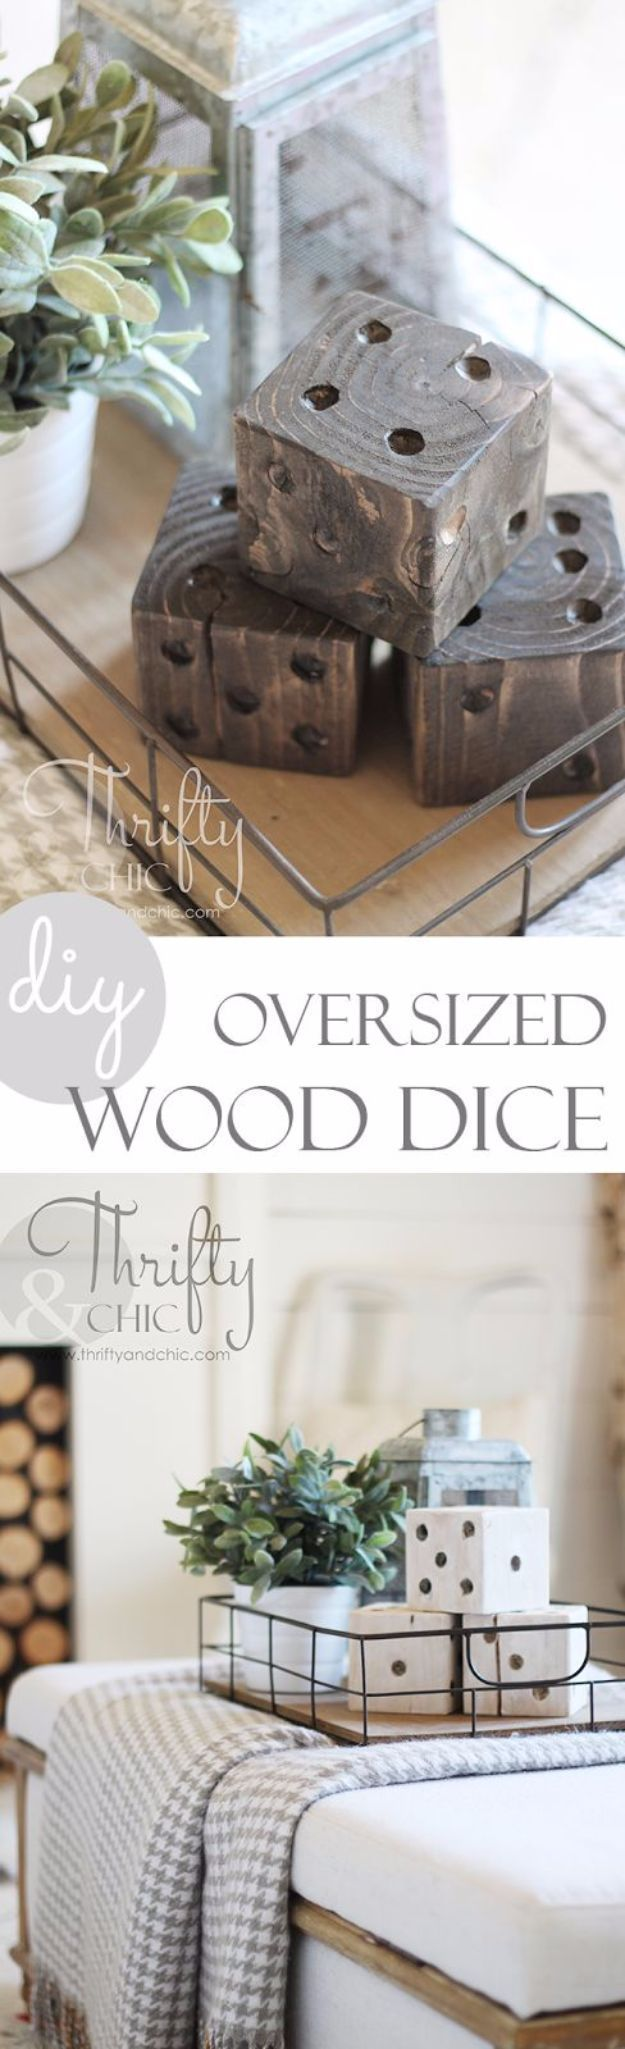 Farmhouse Decor to Make And Sell - DIY Oversized Wood Dice - Easy ...